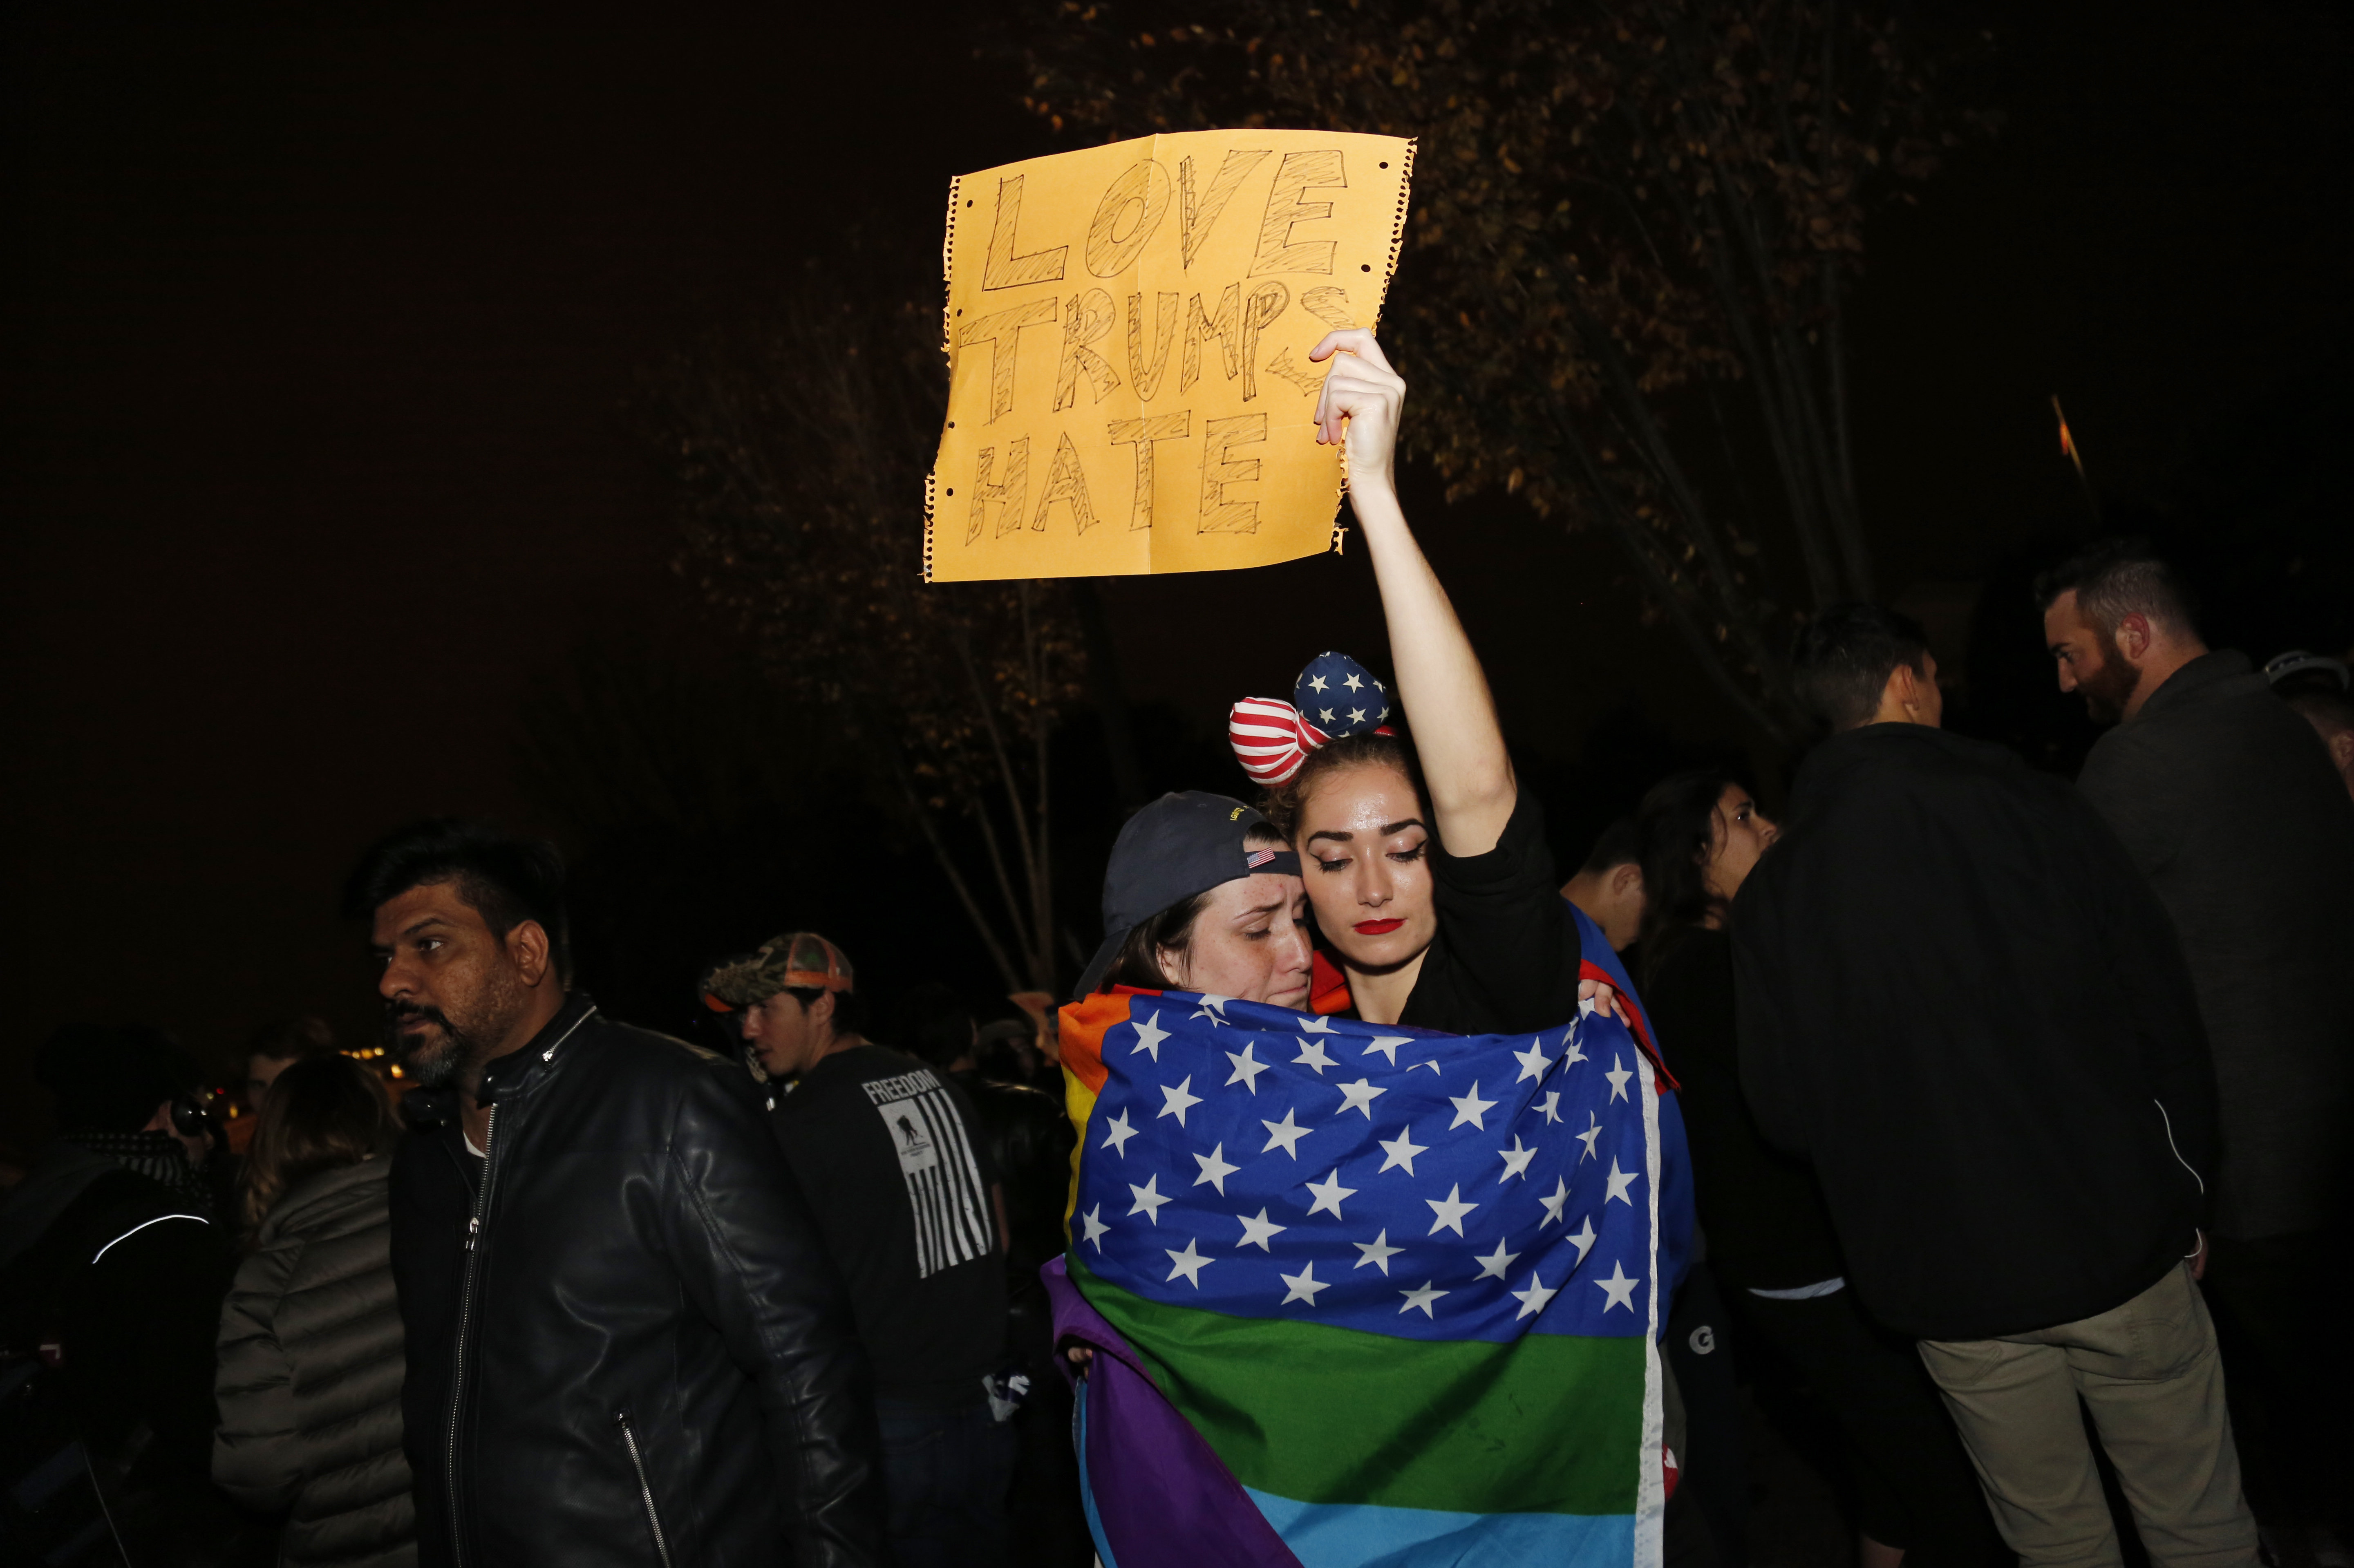 Supporters of Democratic presidential candidate Hillary Clinton react outside the White House early November 9, 2016 in Washington, DC